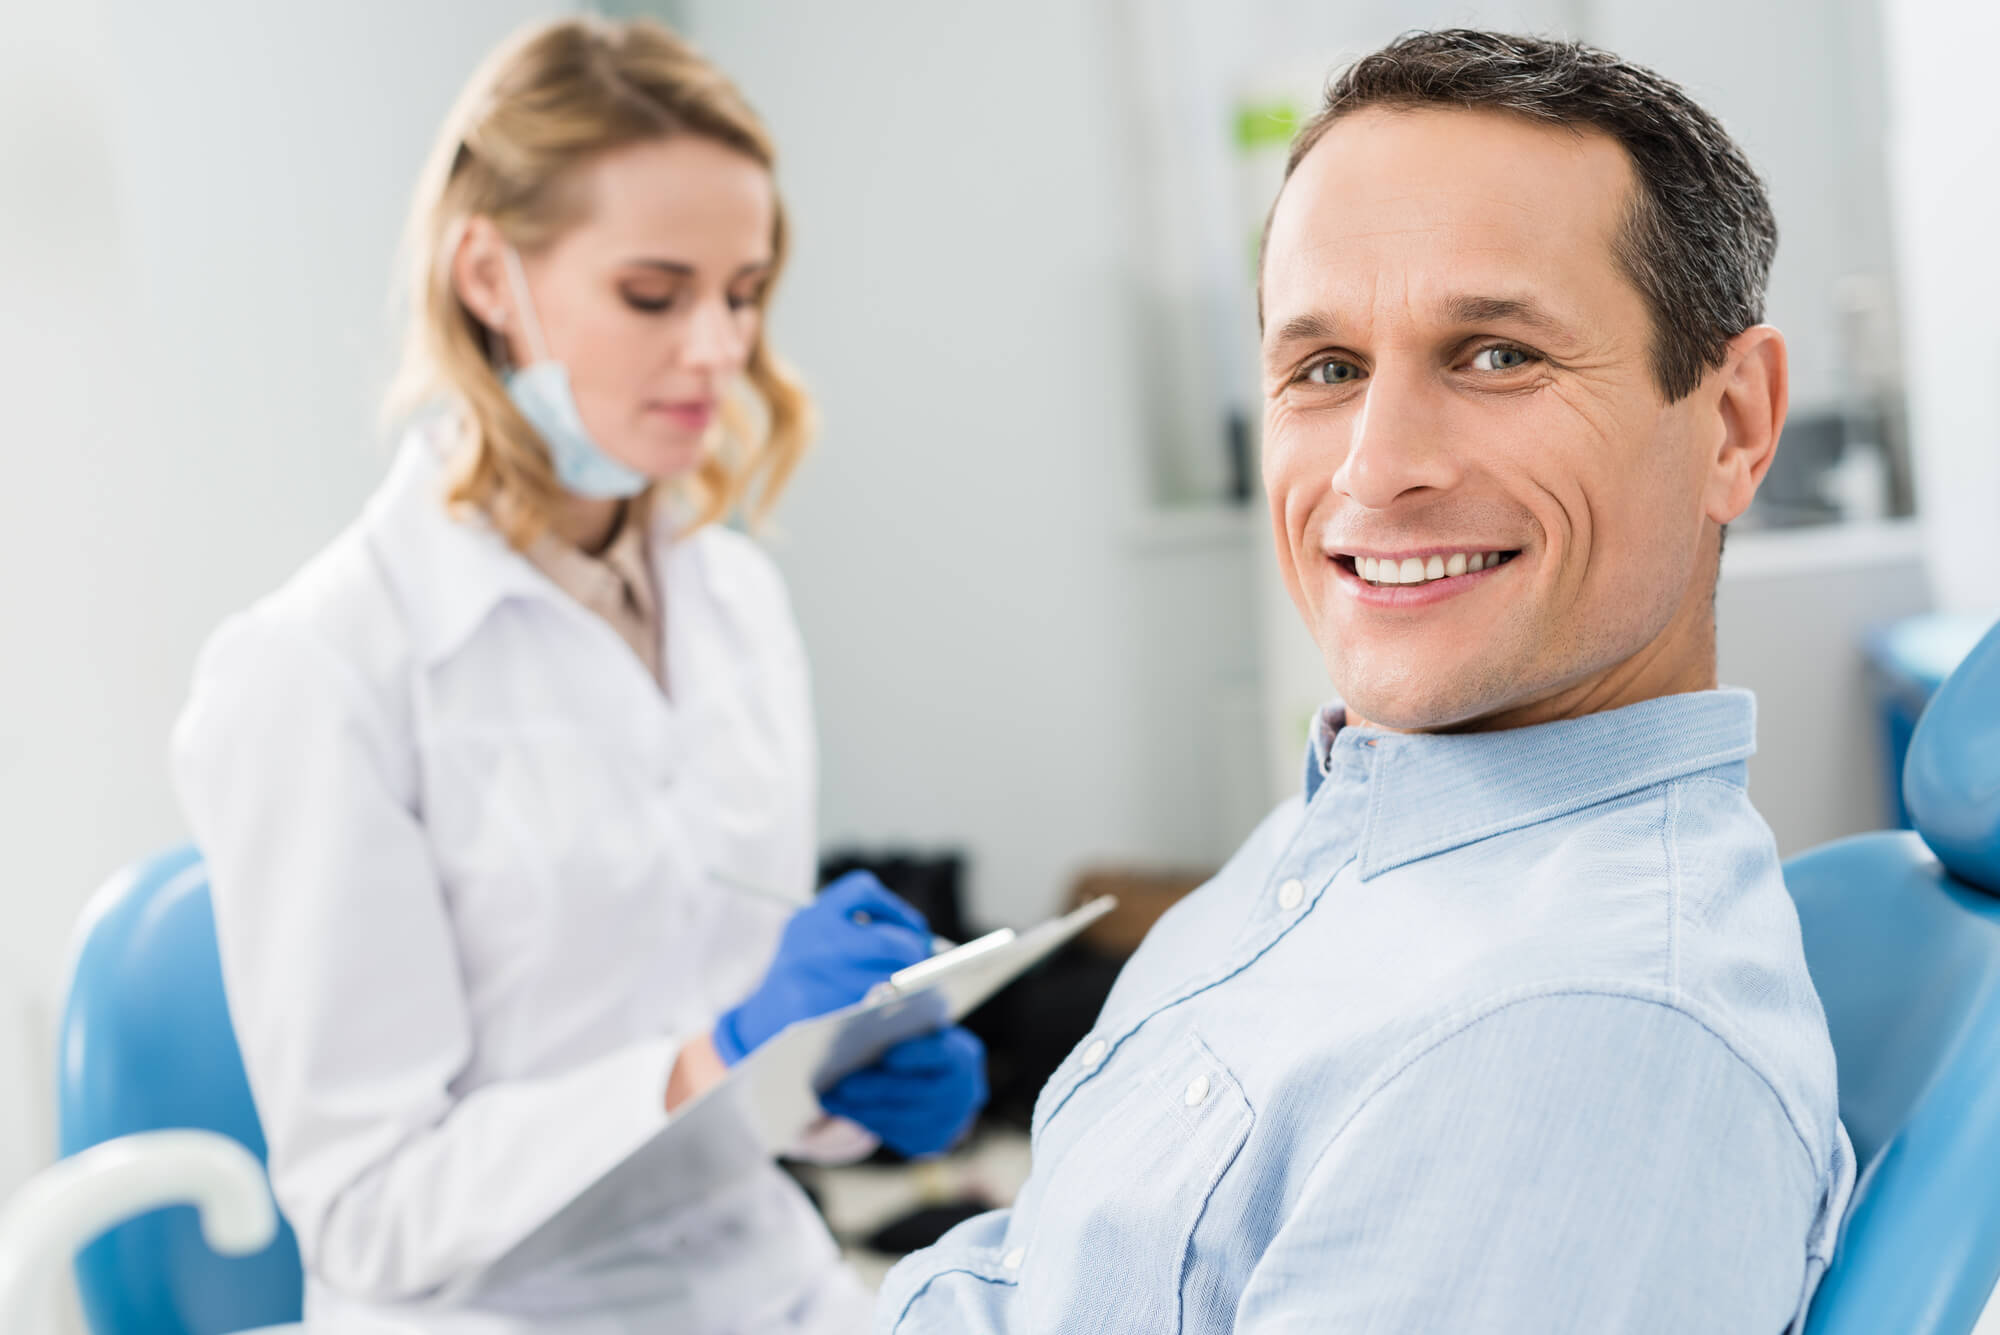 where to get tmj treatment in boynton beach?